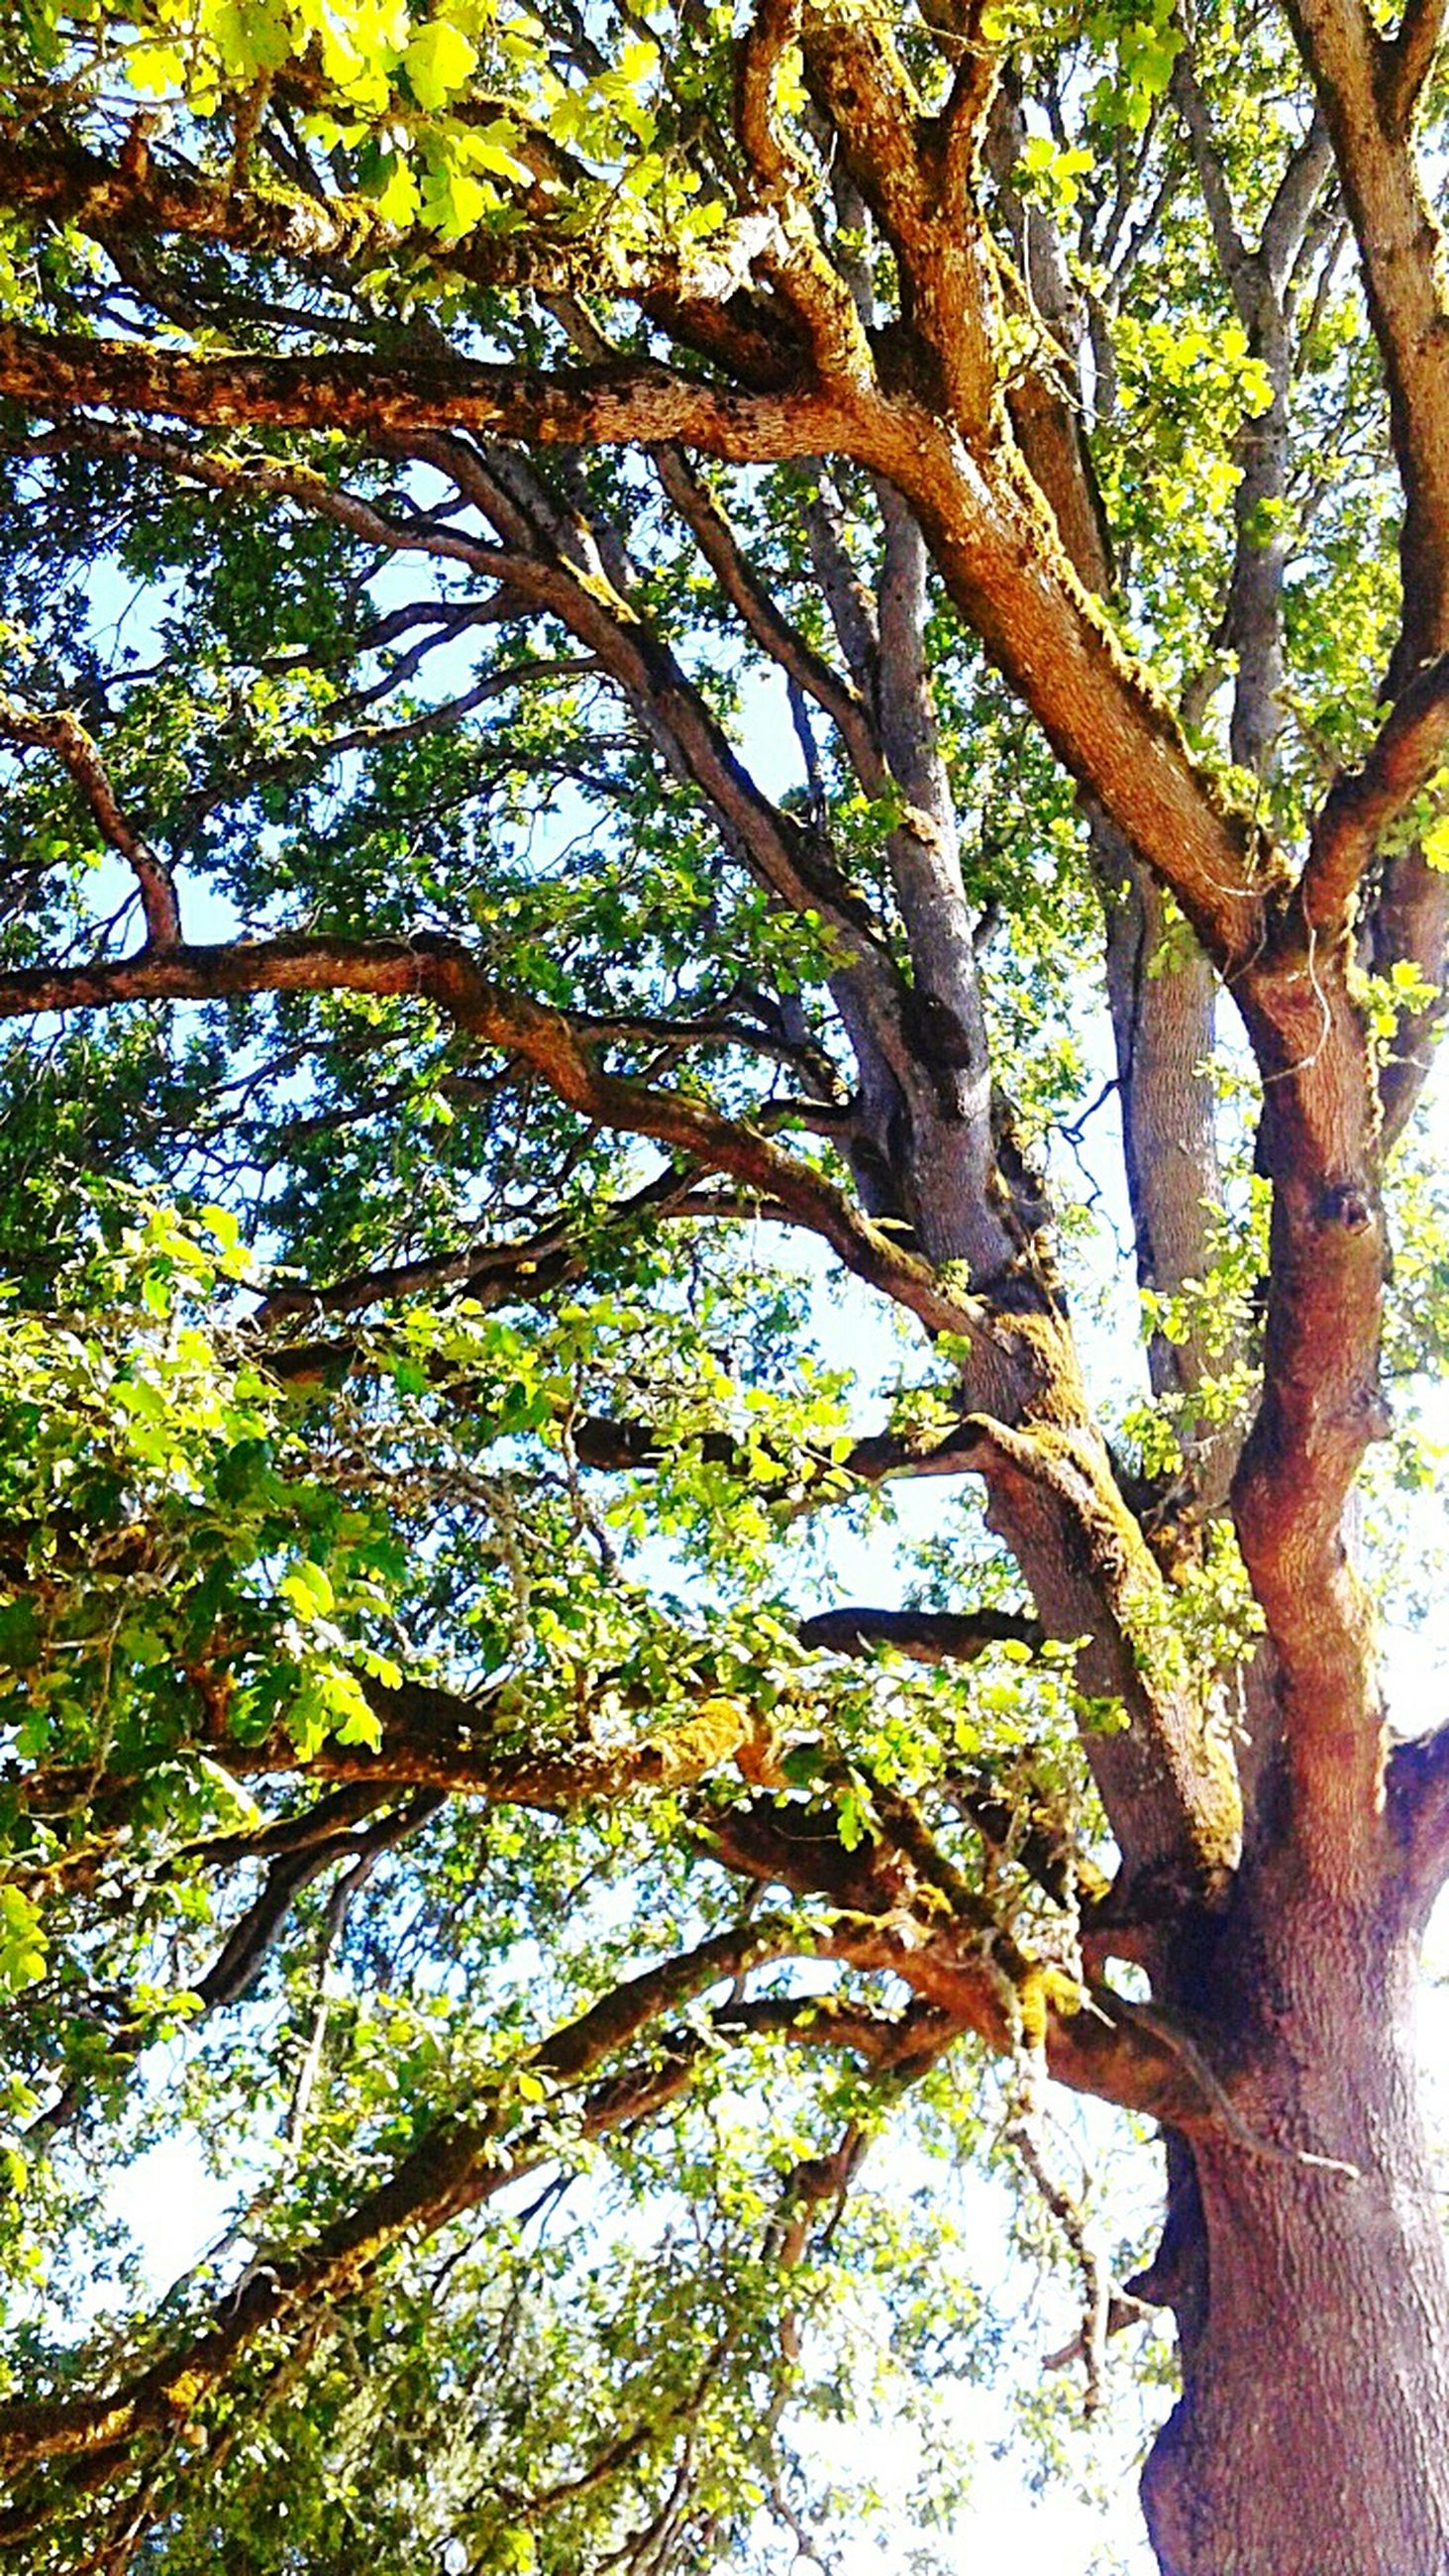 tree, low angle view, branch, growth, green color, tree trunk, nature, leaf, tranquility, beauty in nature, lush foliage, day, green, directly below, outdoors, no people, sky, sunlight, tree canopy, backgrounds